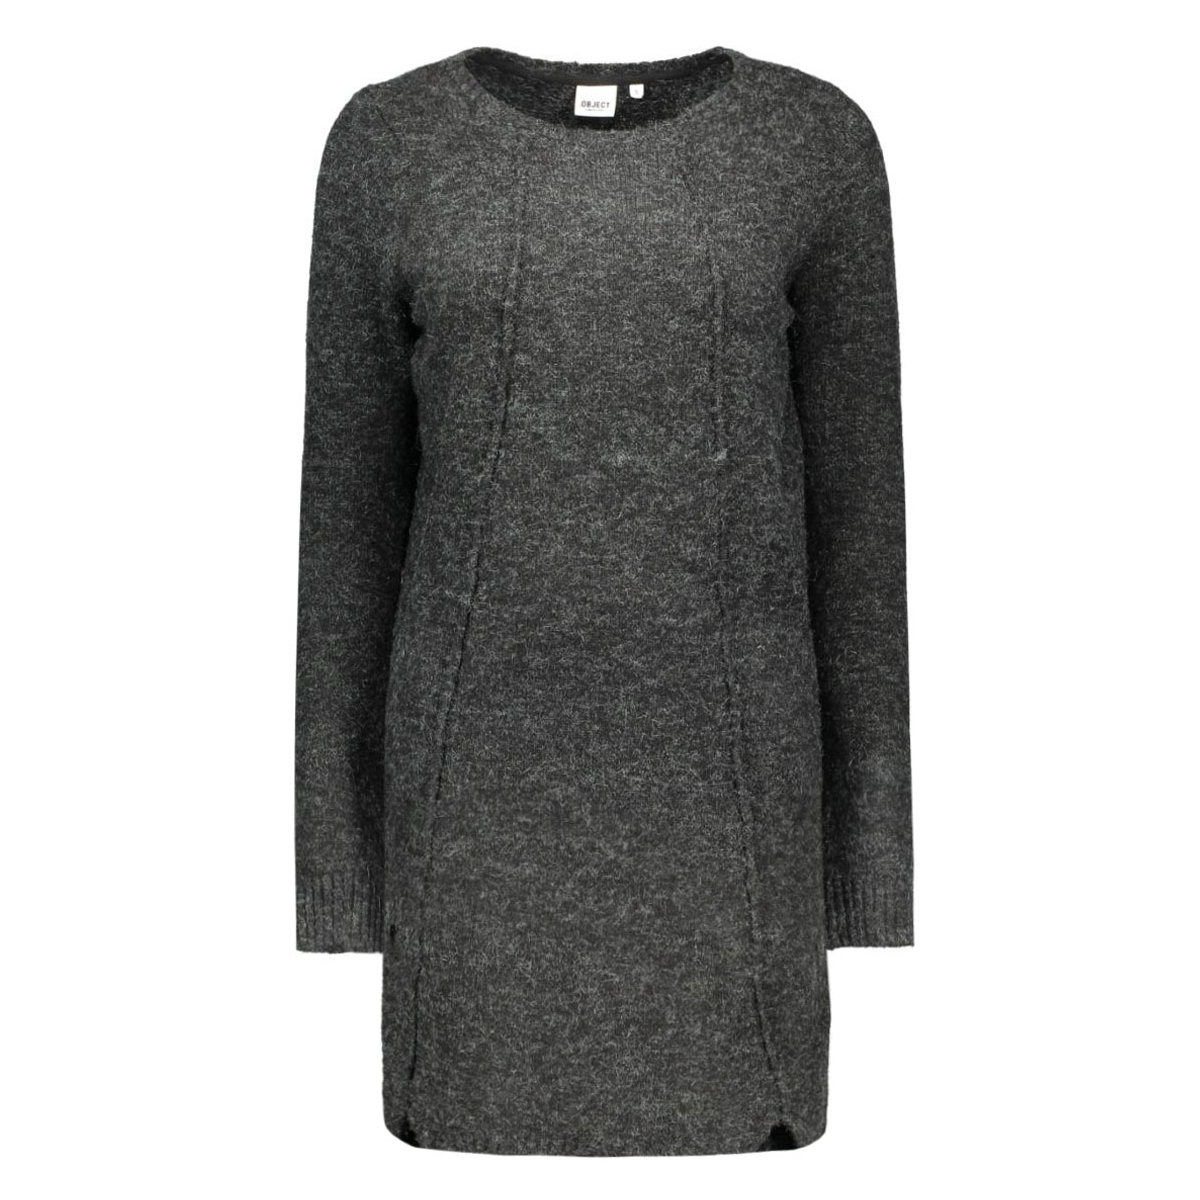 objnonsia l/s knit dress 86 23022973 object jurk vetiver